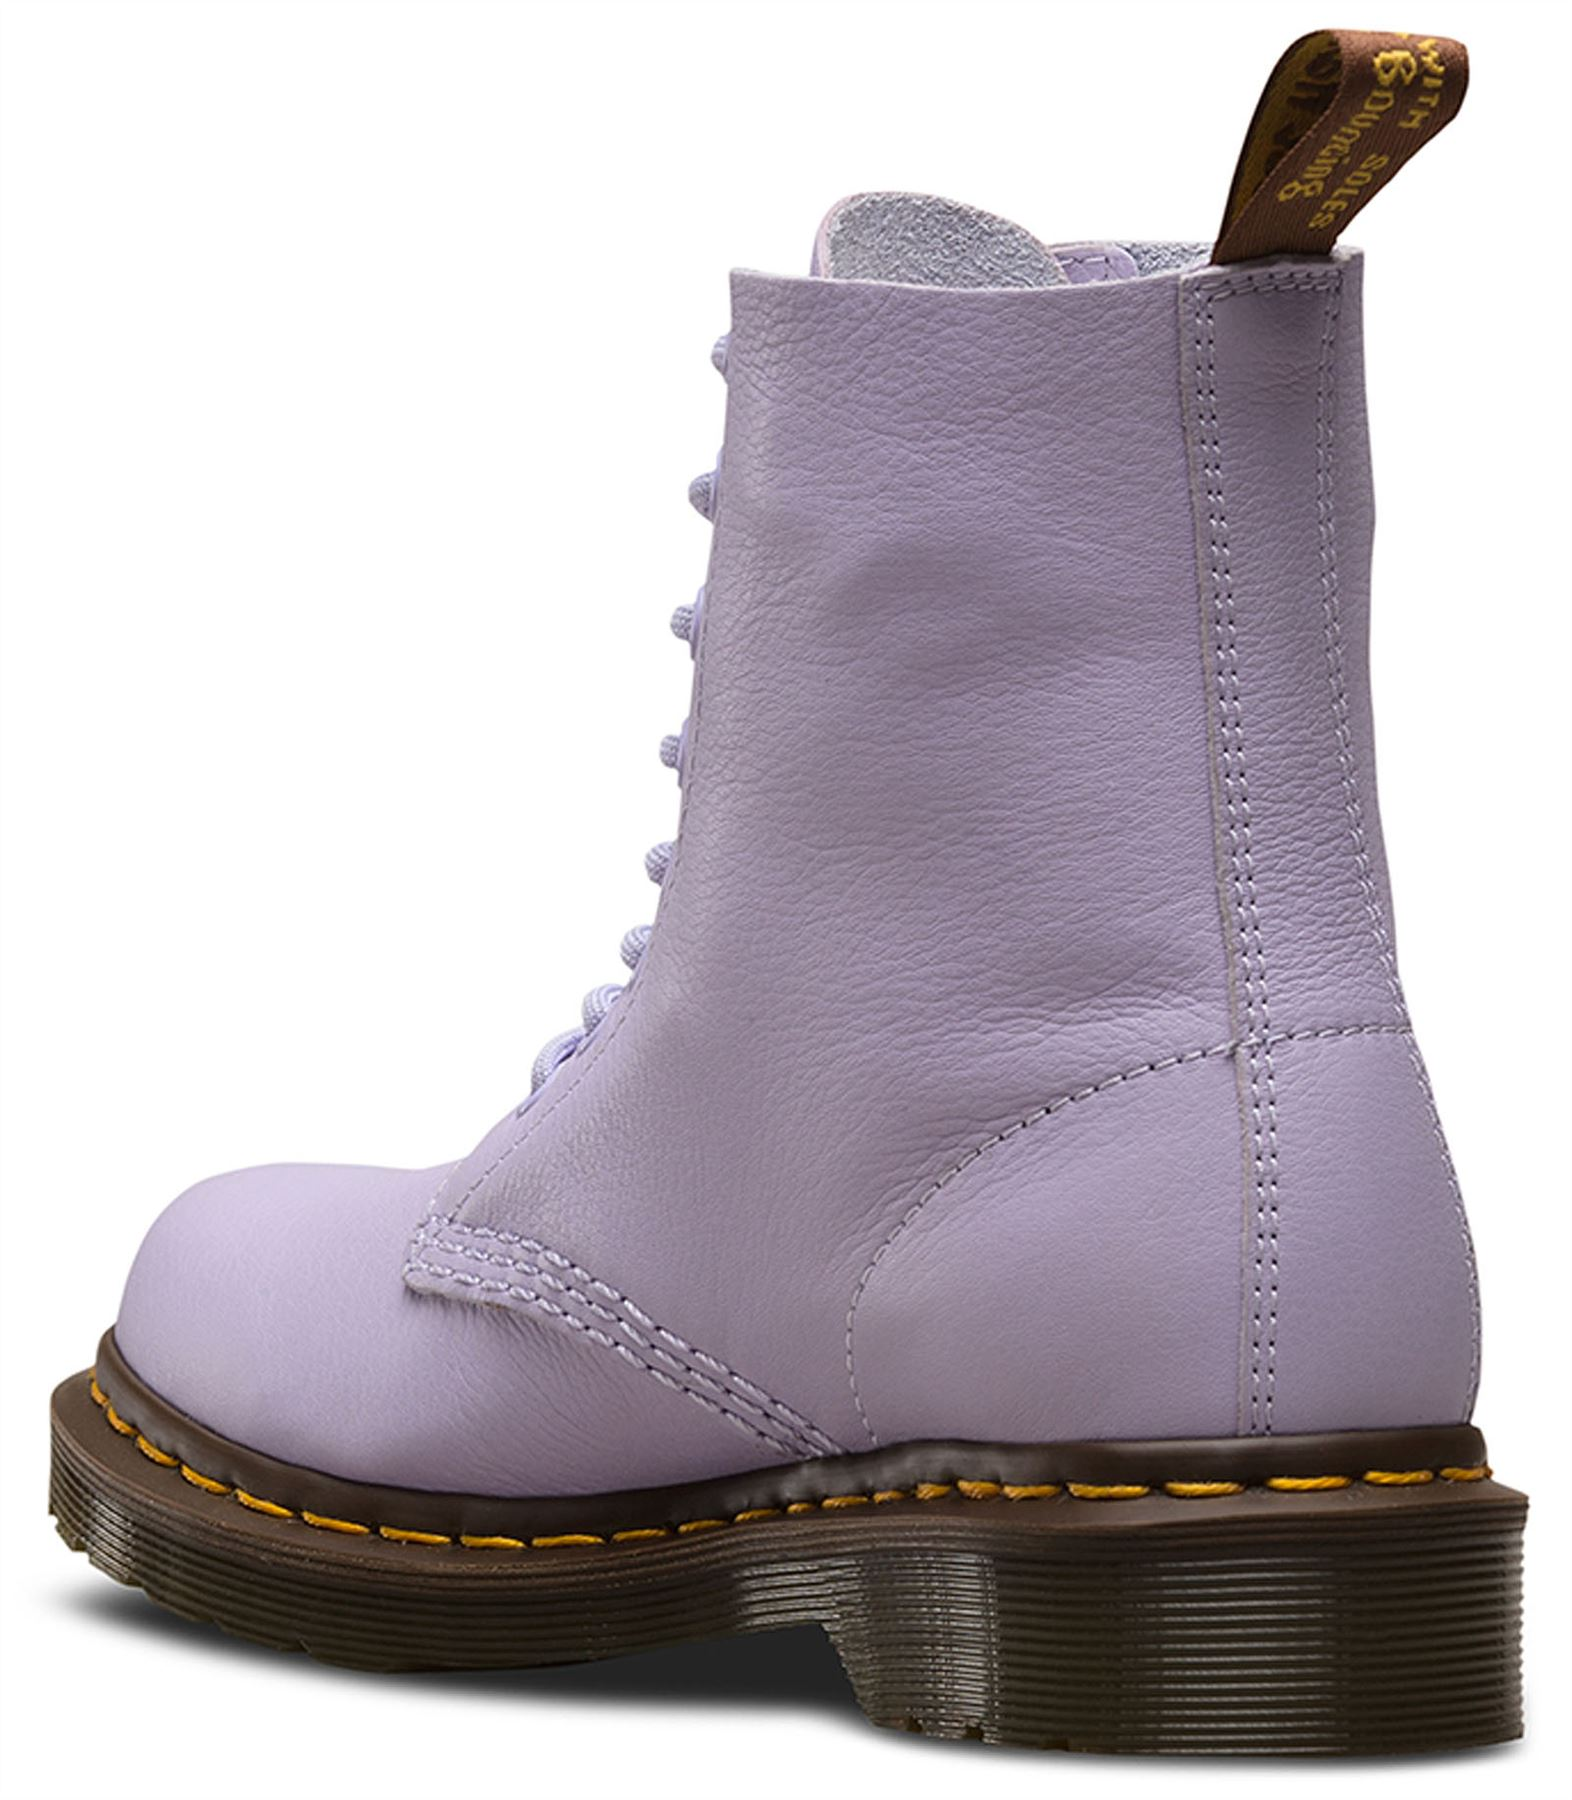 Dr Martens Pascal 1460 Purple Heather Virginia Virginia Virginia Soft Nappa Leder Stiefel 5624a7